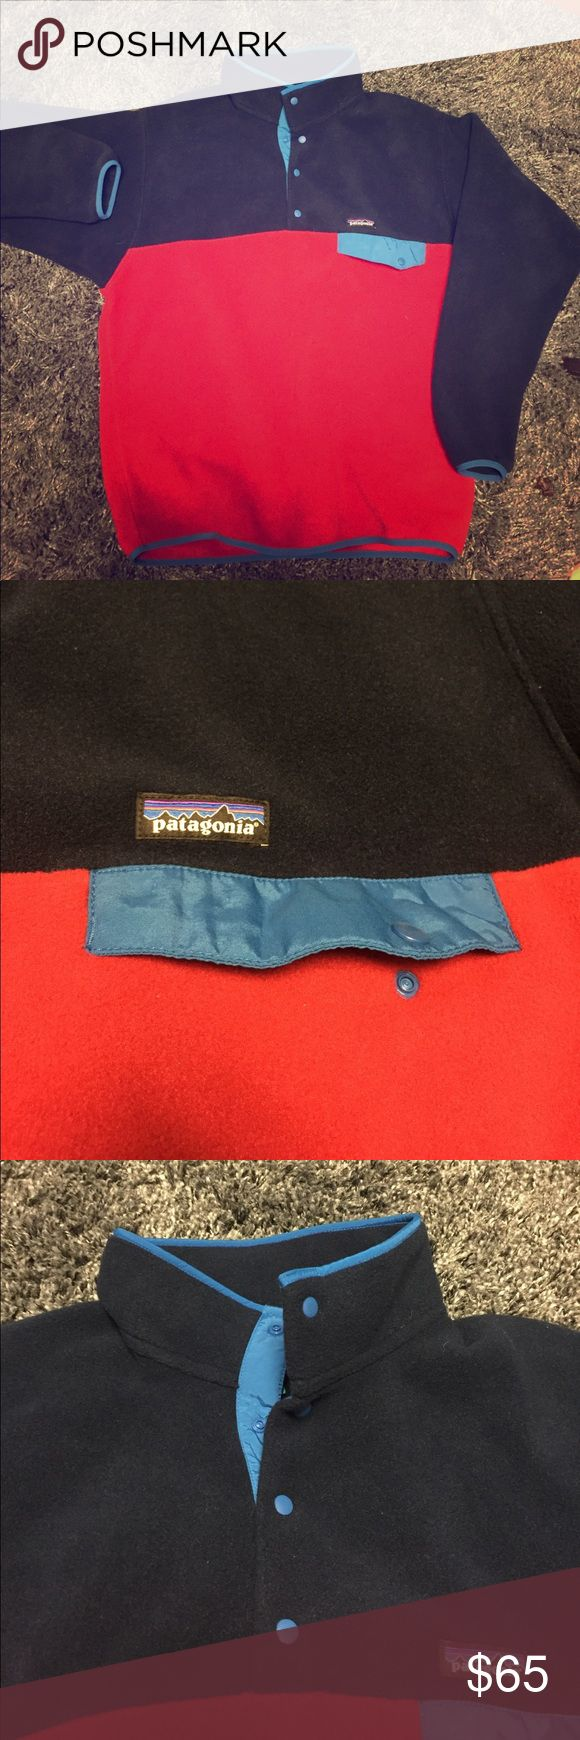 ❗️Men's large Patagonia Synchilla jacket ❗️ ❗️perfect condition ❗️ this Patagonia Synchilla jacket is a must have for the winter season, incredibly comfortable and very stylish. Size is a men's large! Patagonia Jackets & Coats